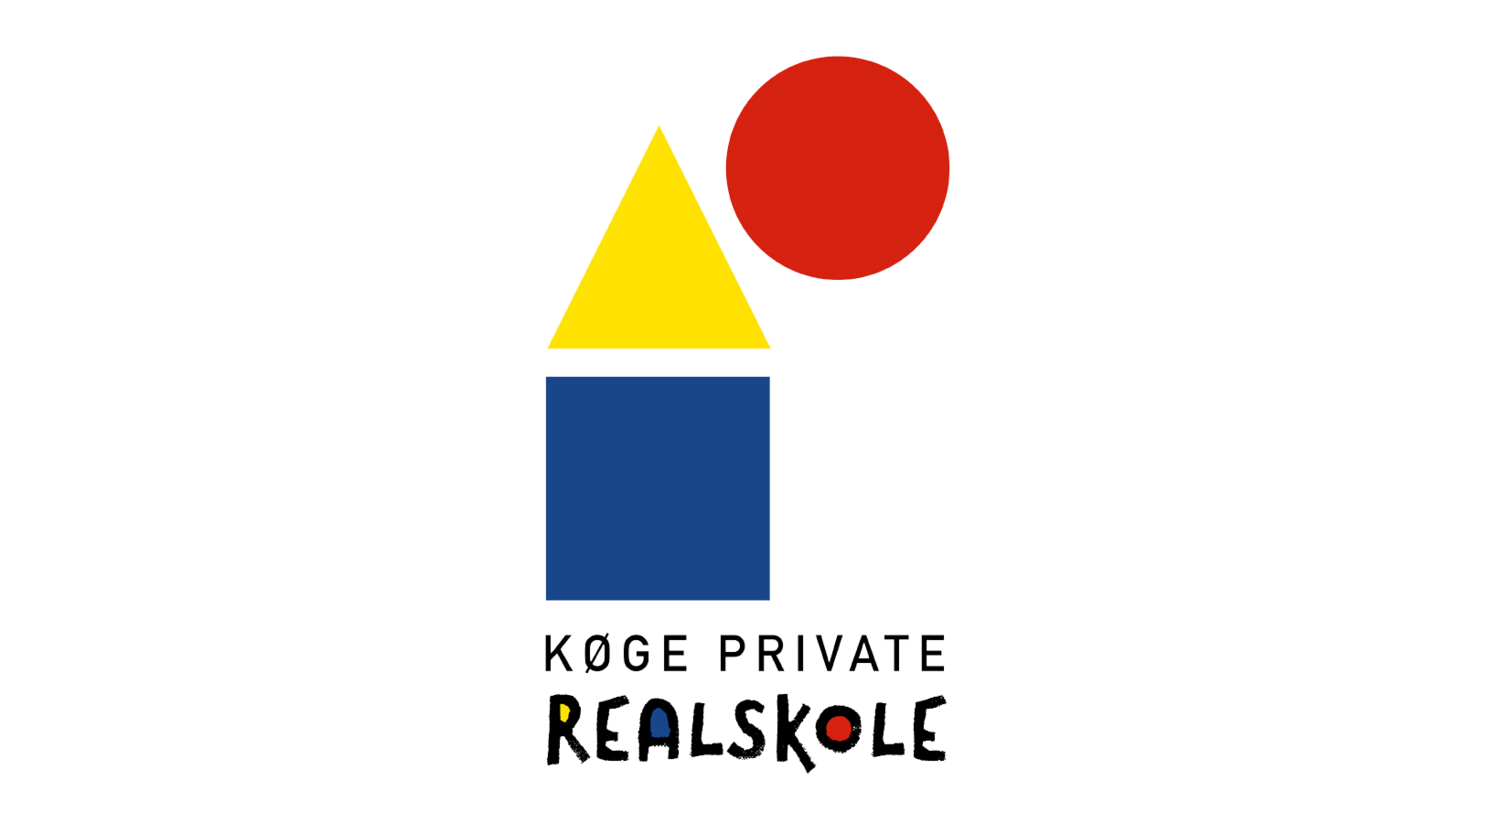 Køge Private Realskole